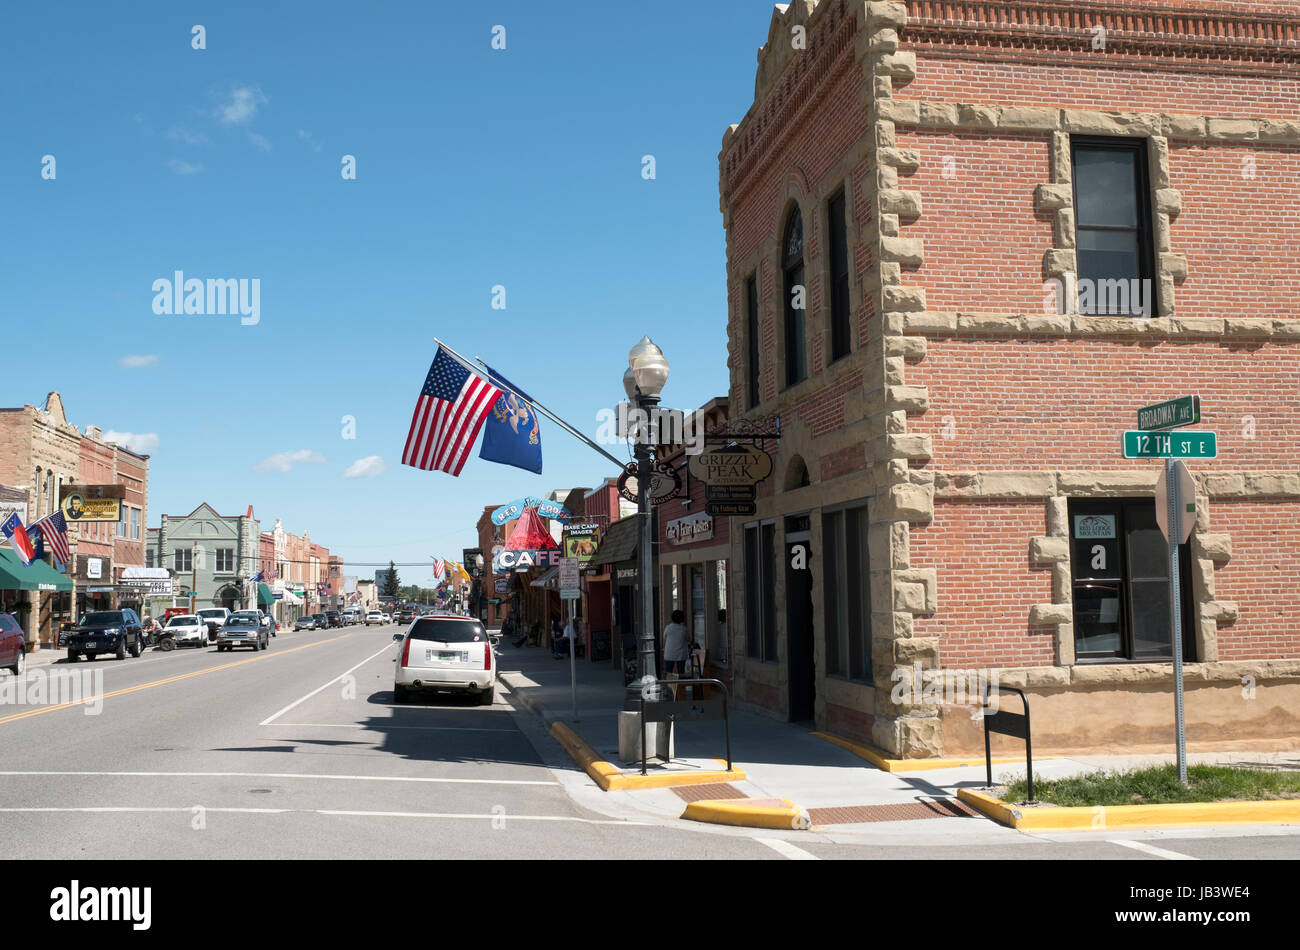 Red Lodge, Montana, Estados Unidos. Imagen De Stock